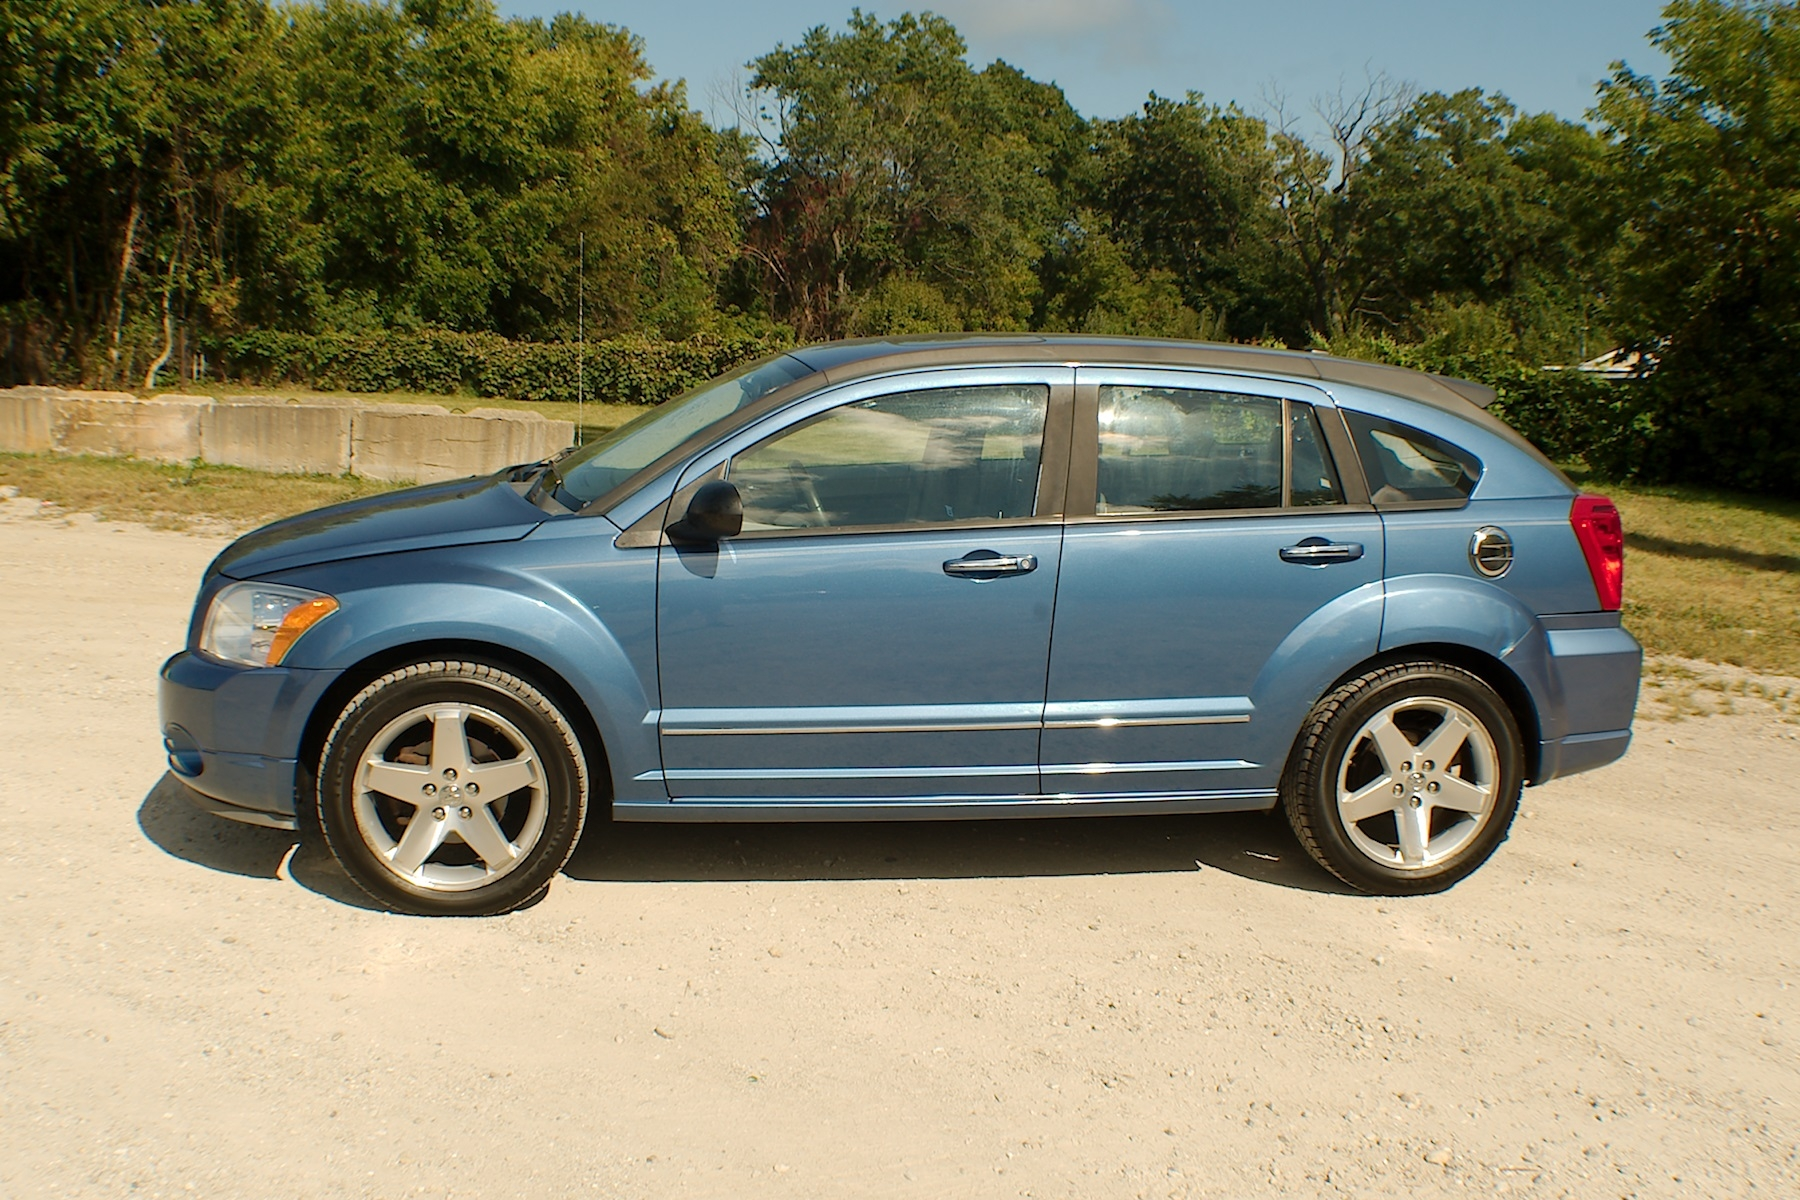 2008 Dodge Caliber RT Blue AWD Wagon Used Car Sale Antioch Zion Waukegan Lake County Illinois